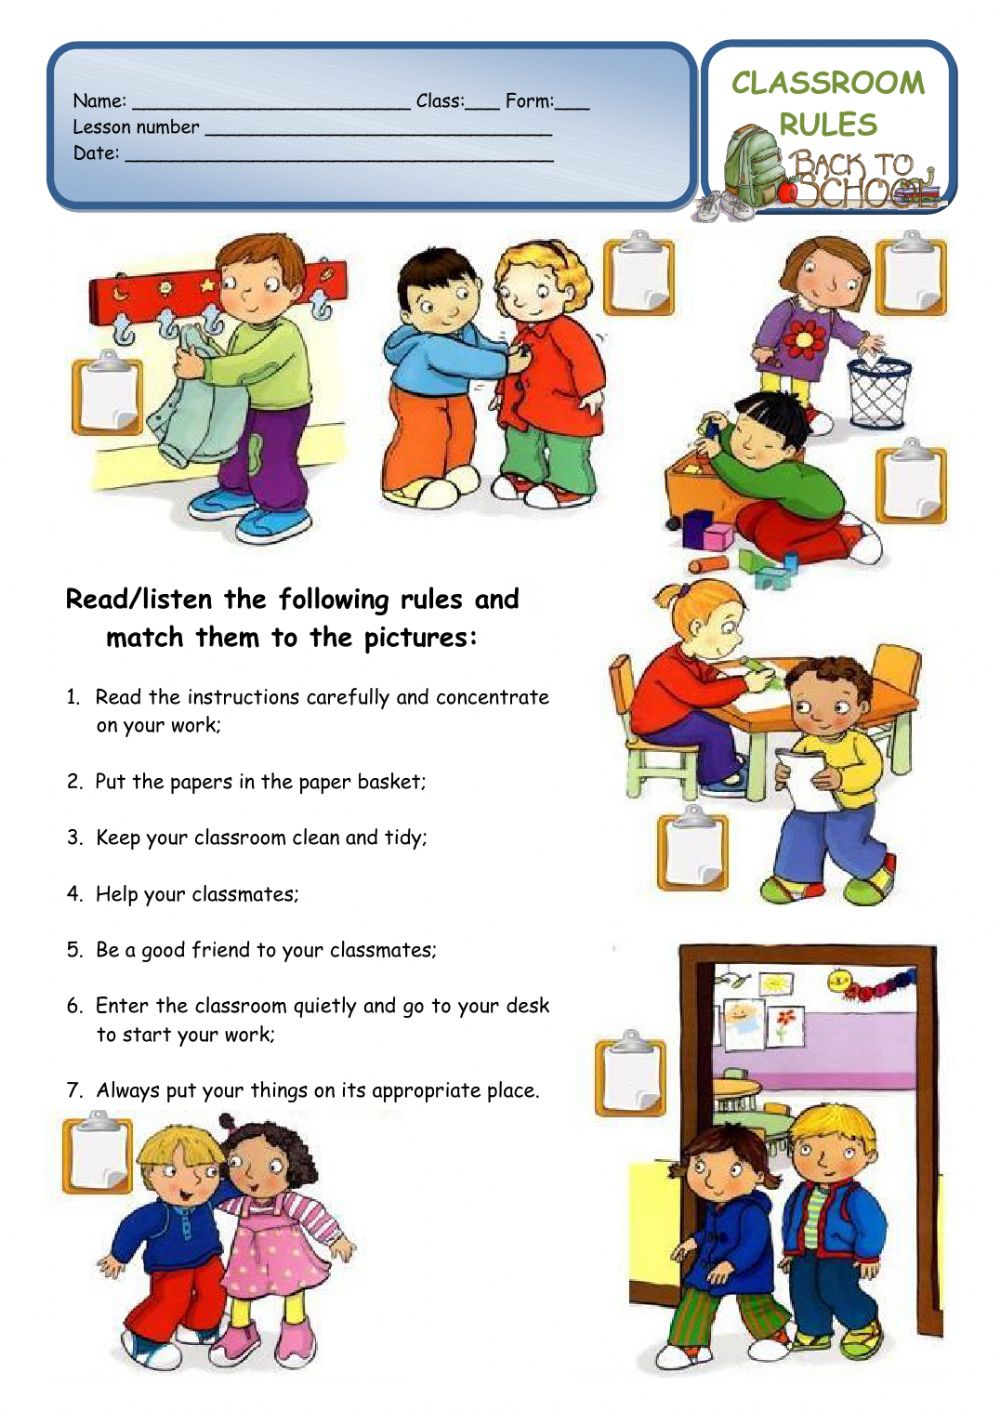 CLASSROOM RULES - a back to school worksheet